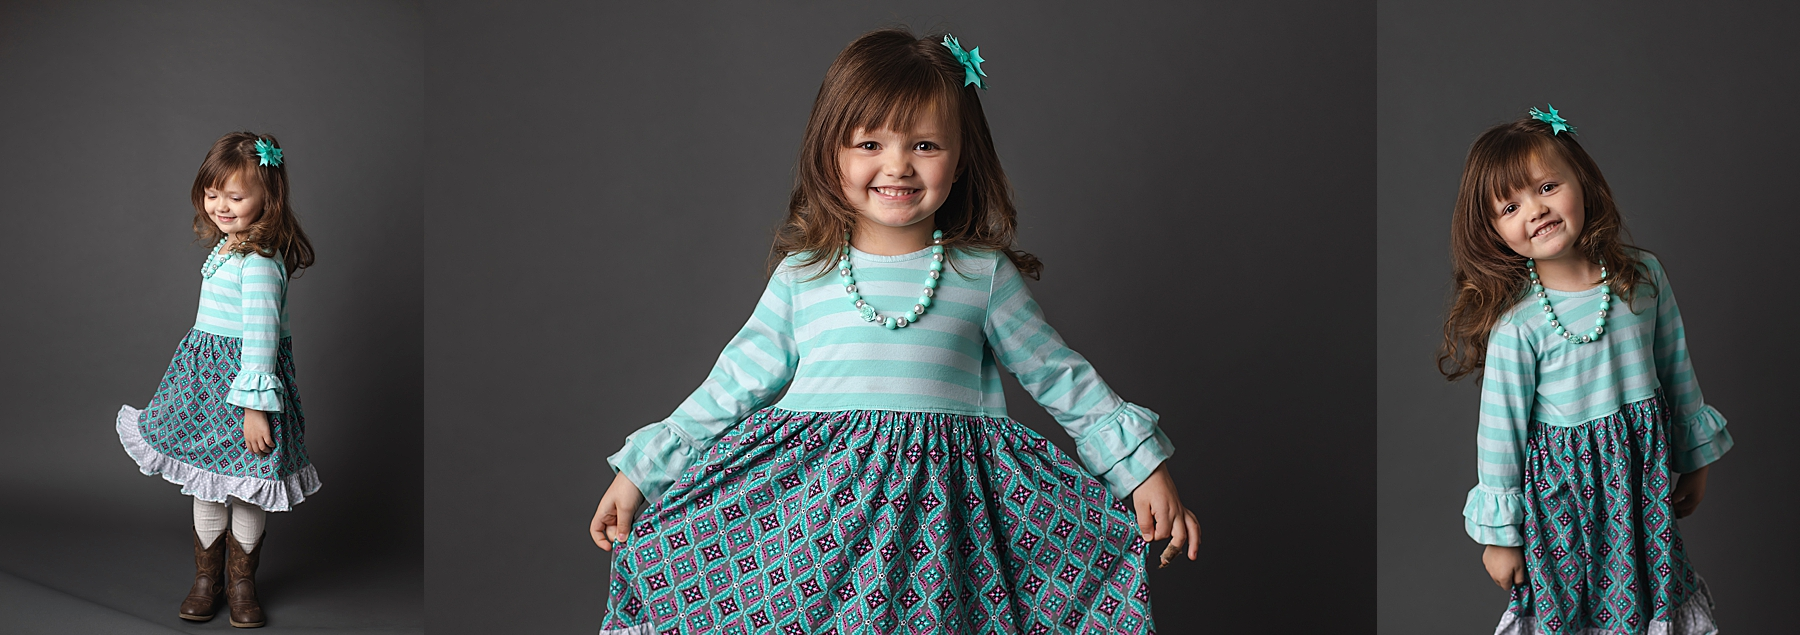 little girl holding dress and twirling in photo how to take good pictures kristina rose photography